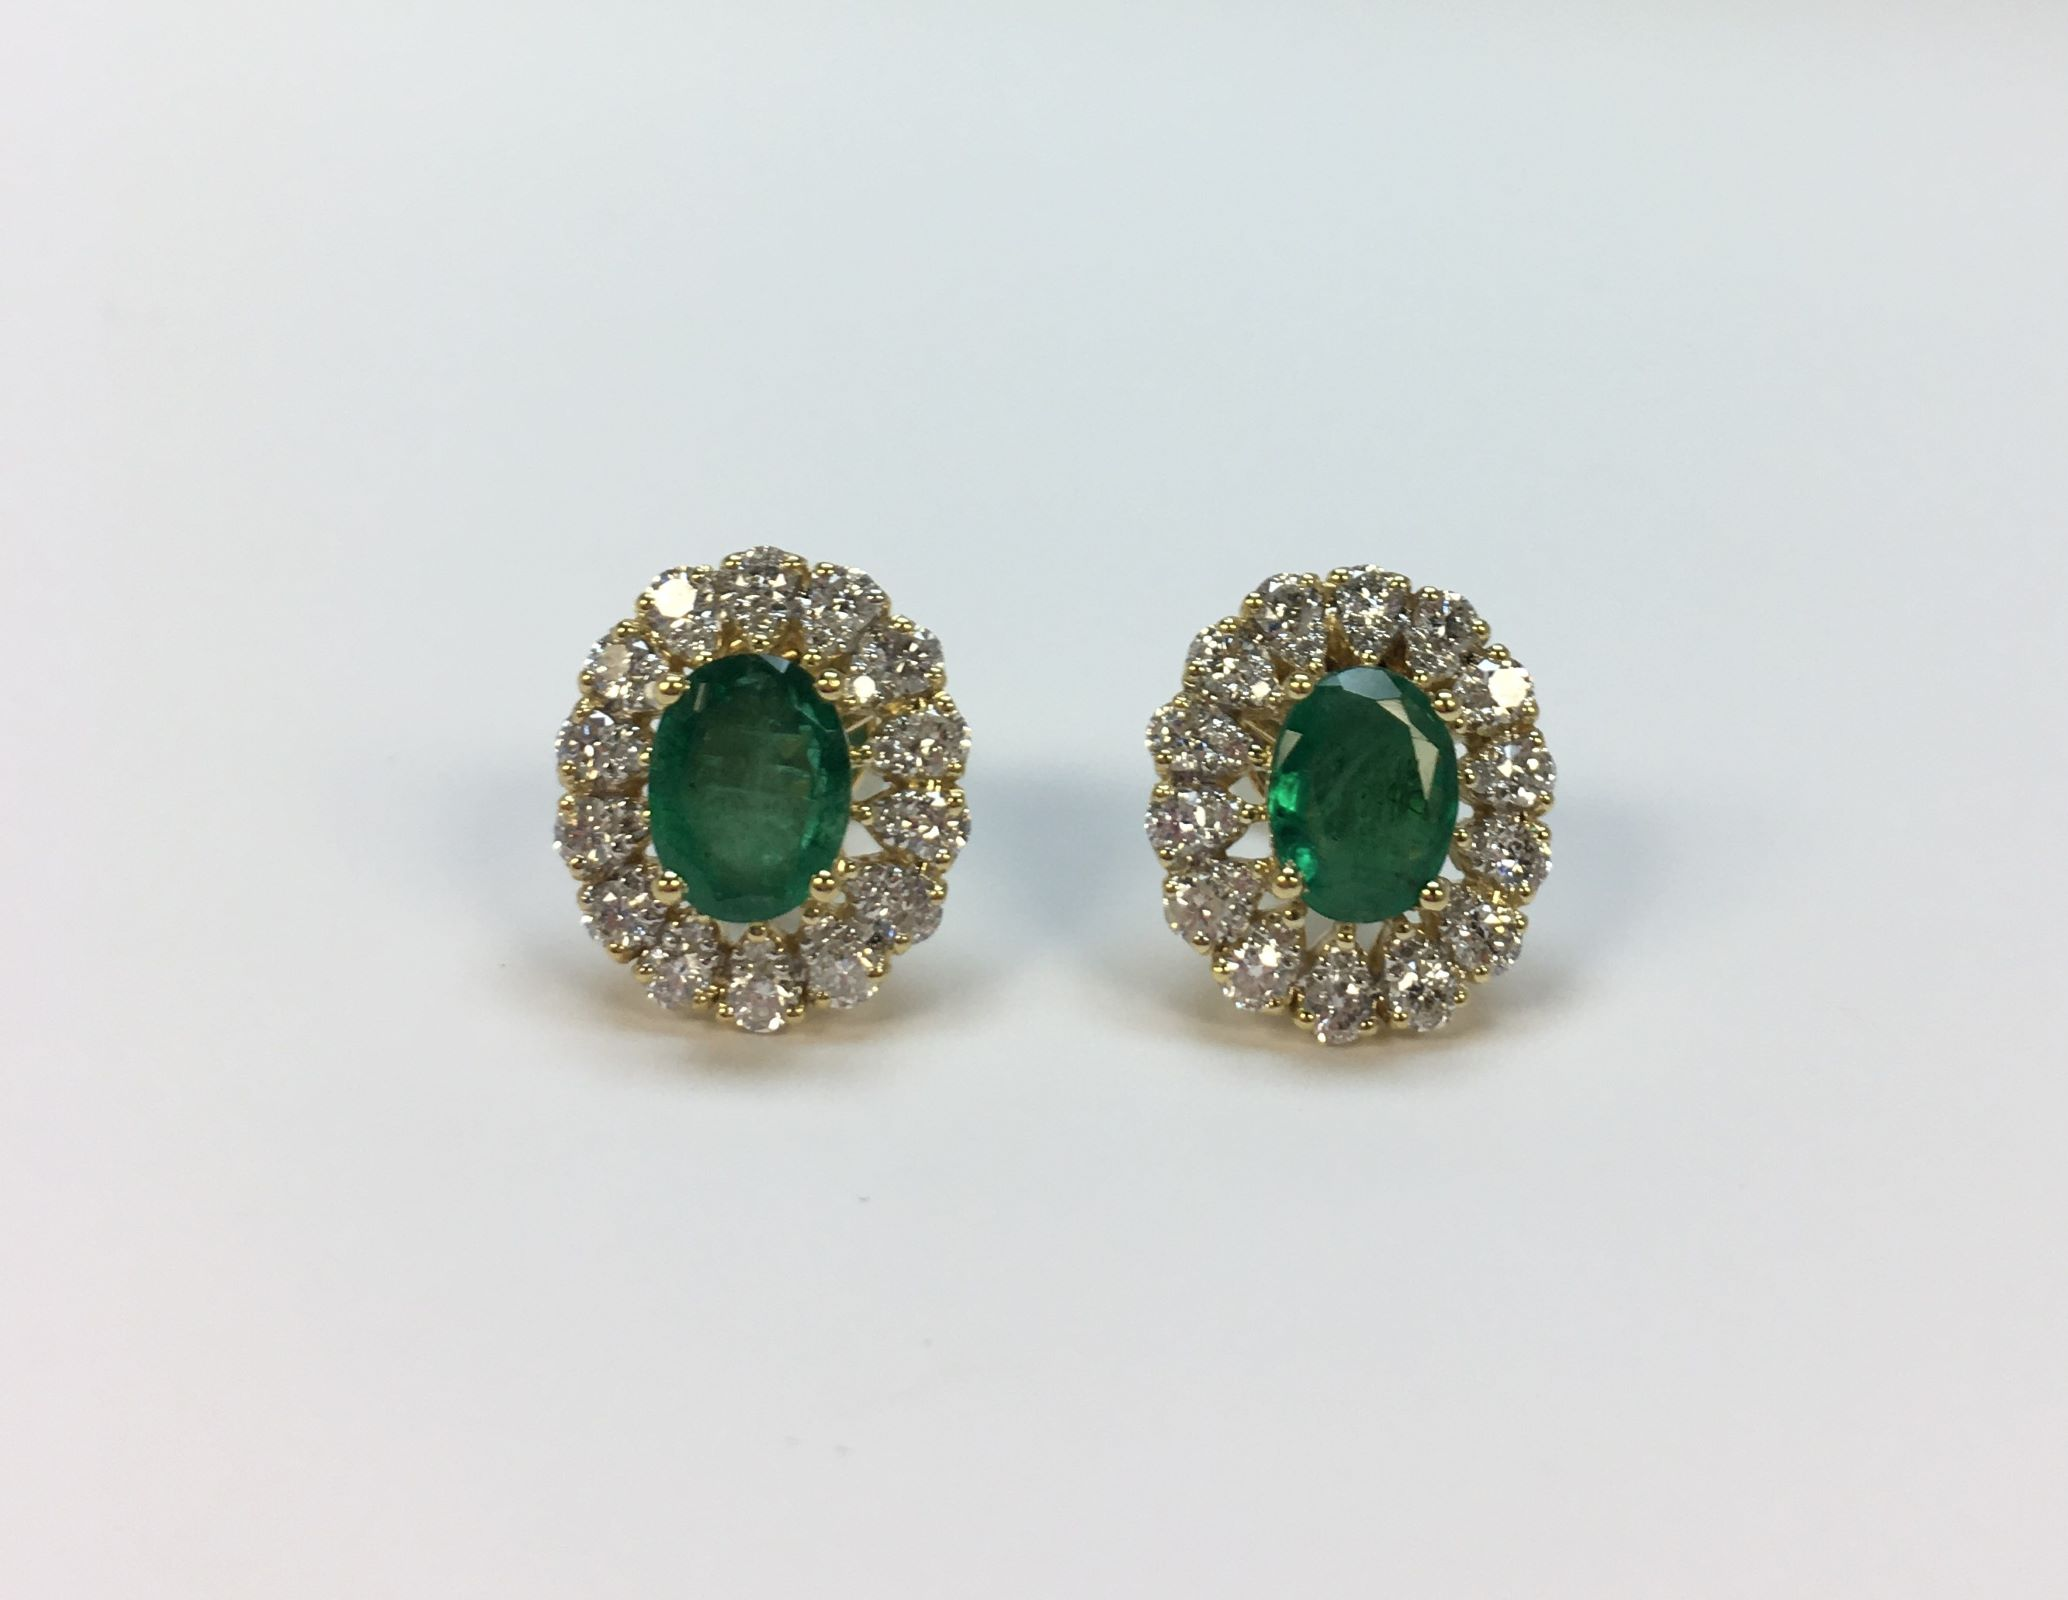 Almost 2 Carats Total Weight Emerald & Diamond Earrings